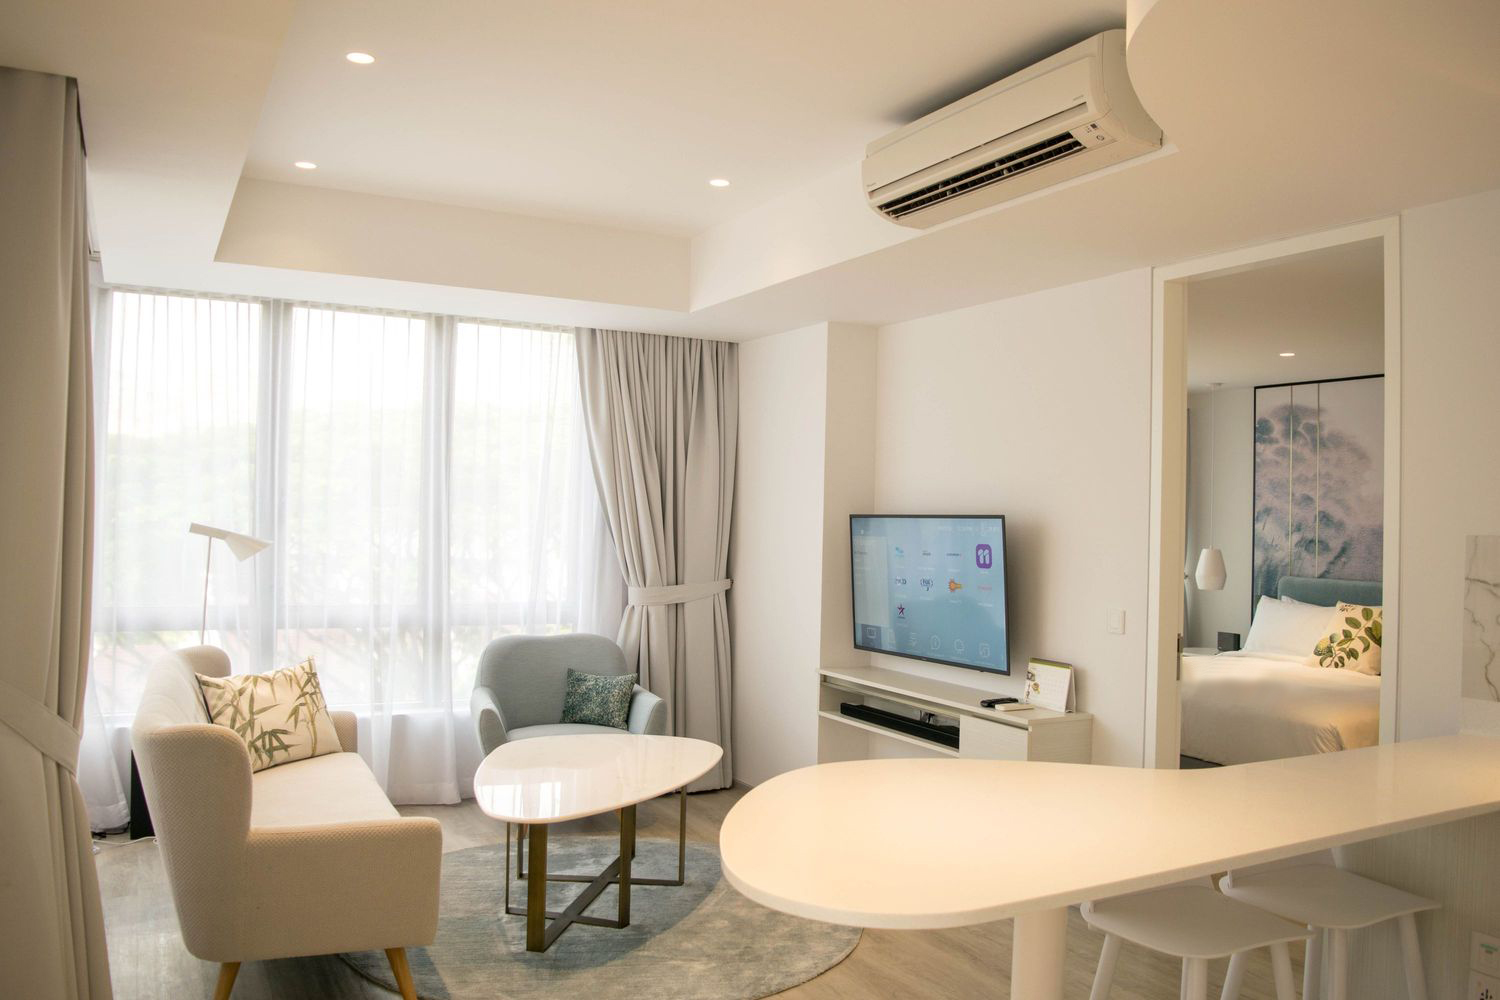 This Homey Serviced Suite in Singapore Could Even be Your Dream Home